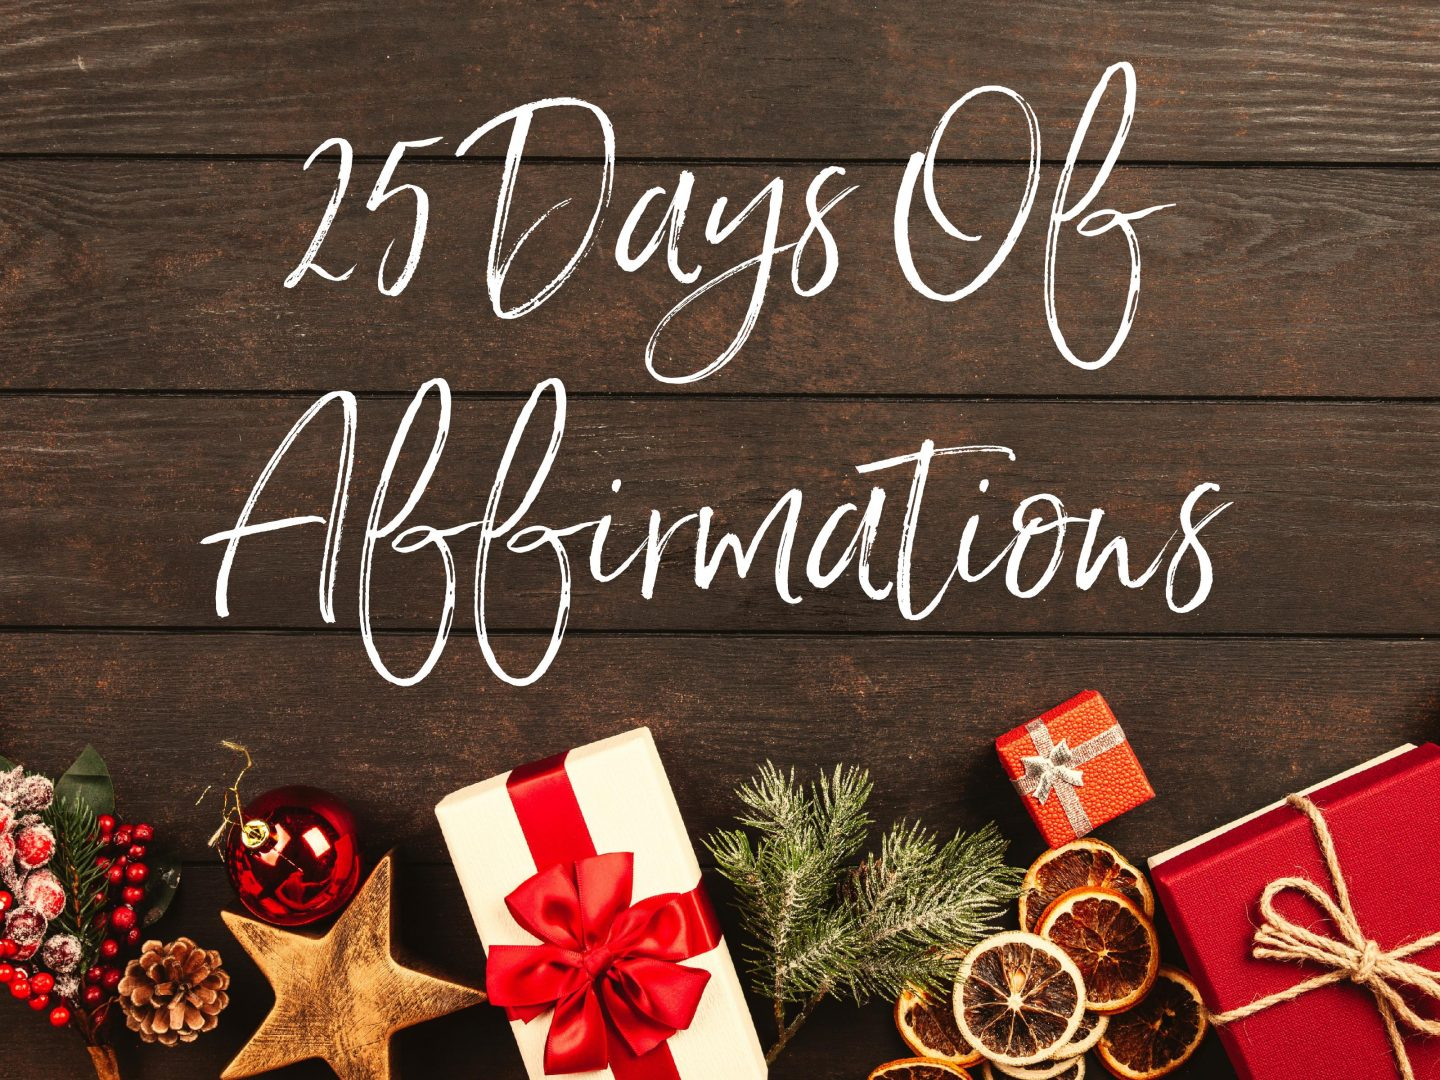 25 DAYS OF AFFIRMATIONS 2018